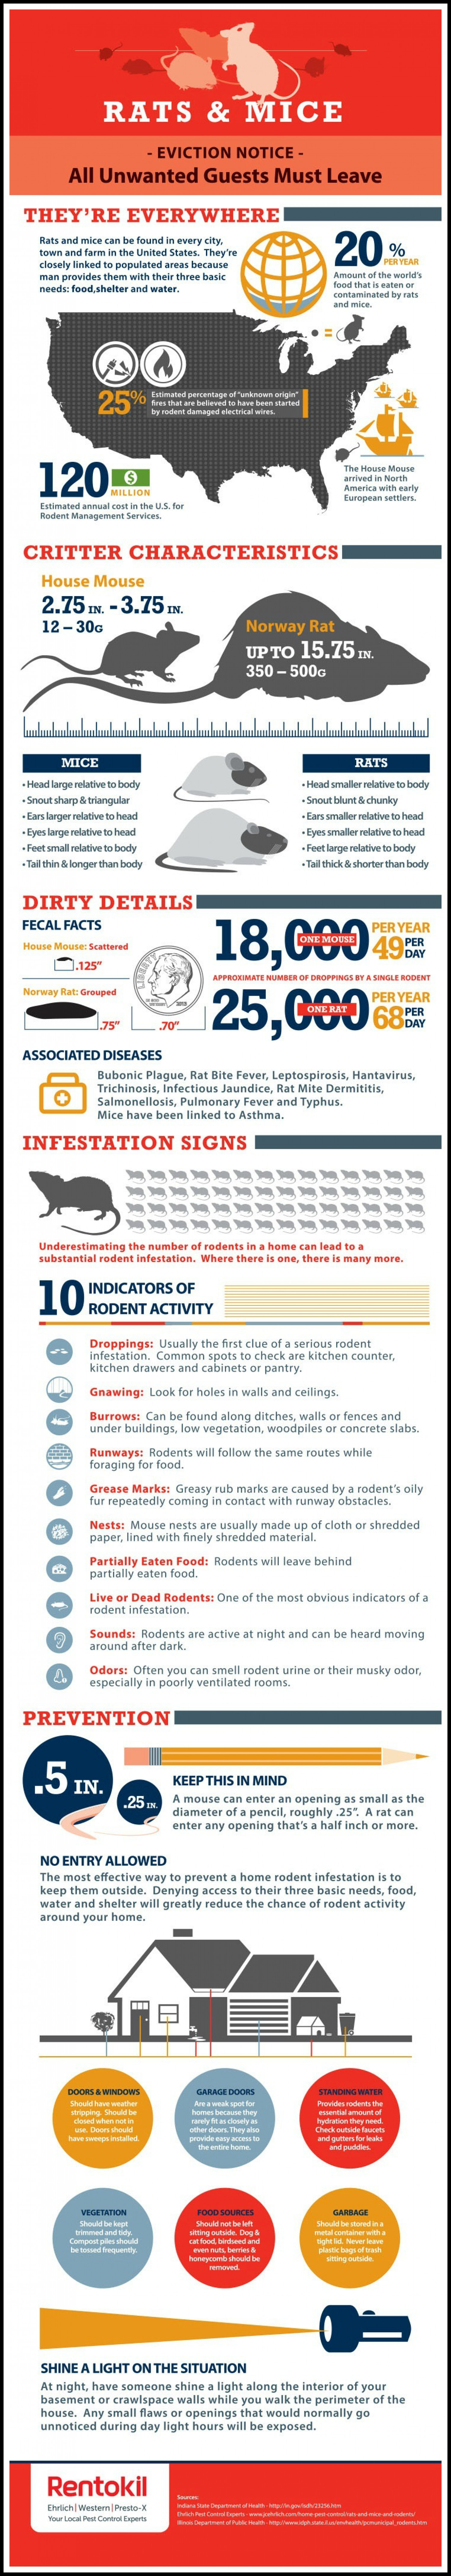 Rats & Mice: The Dirty Details  Infographic